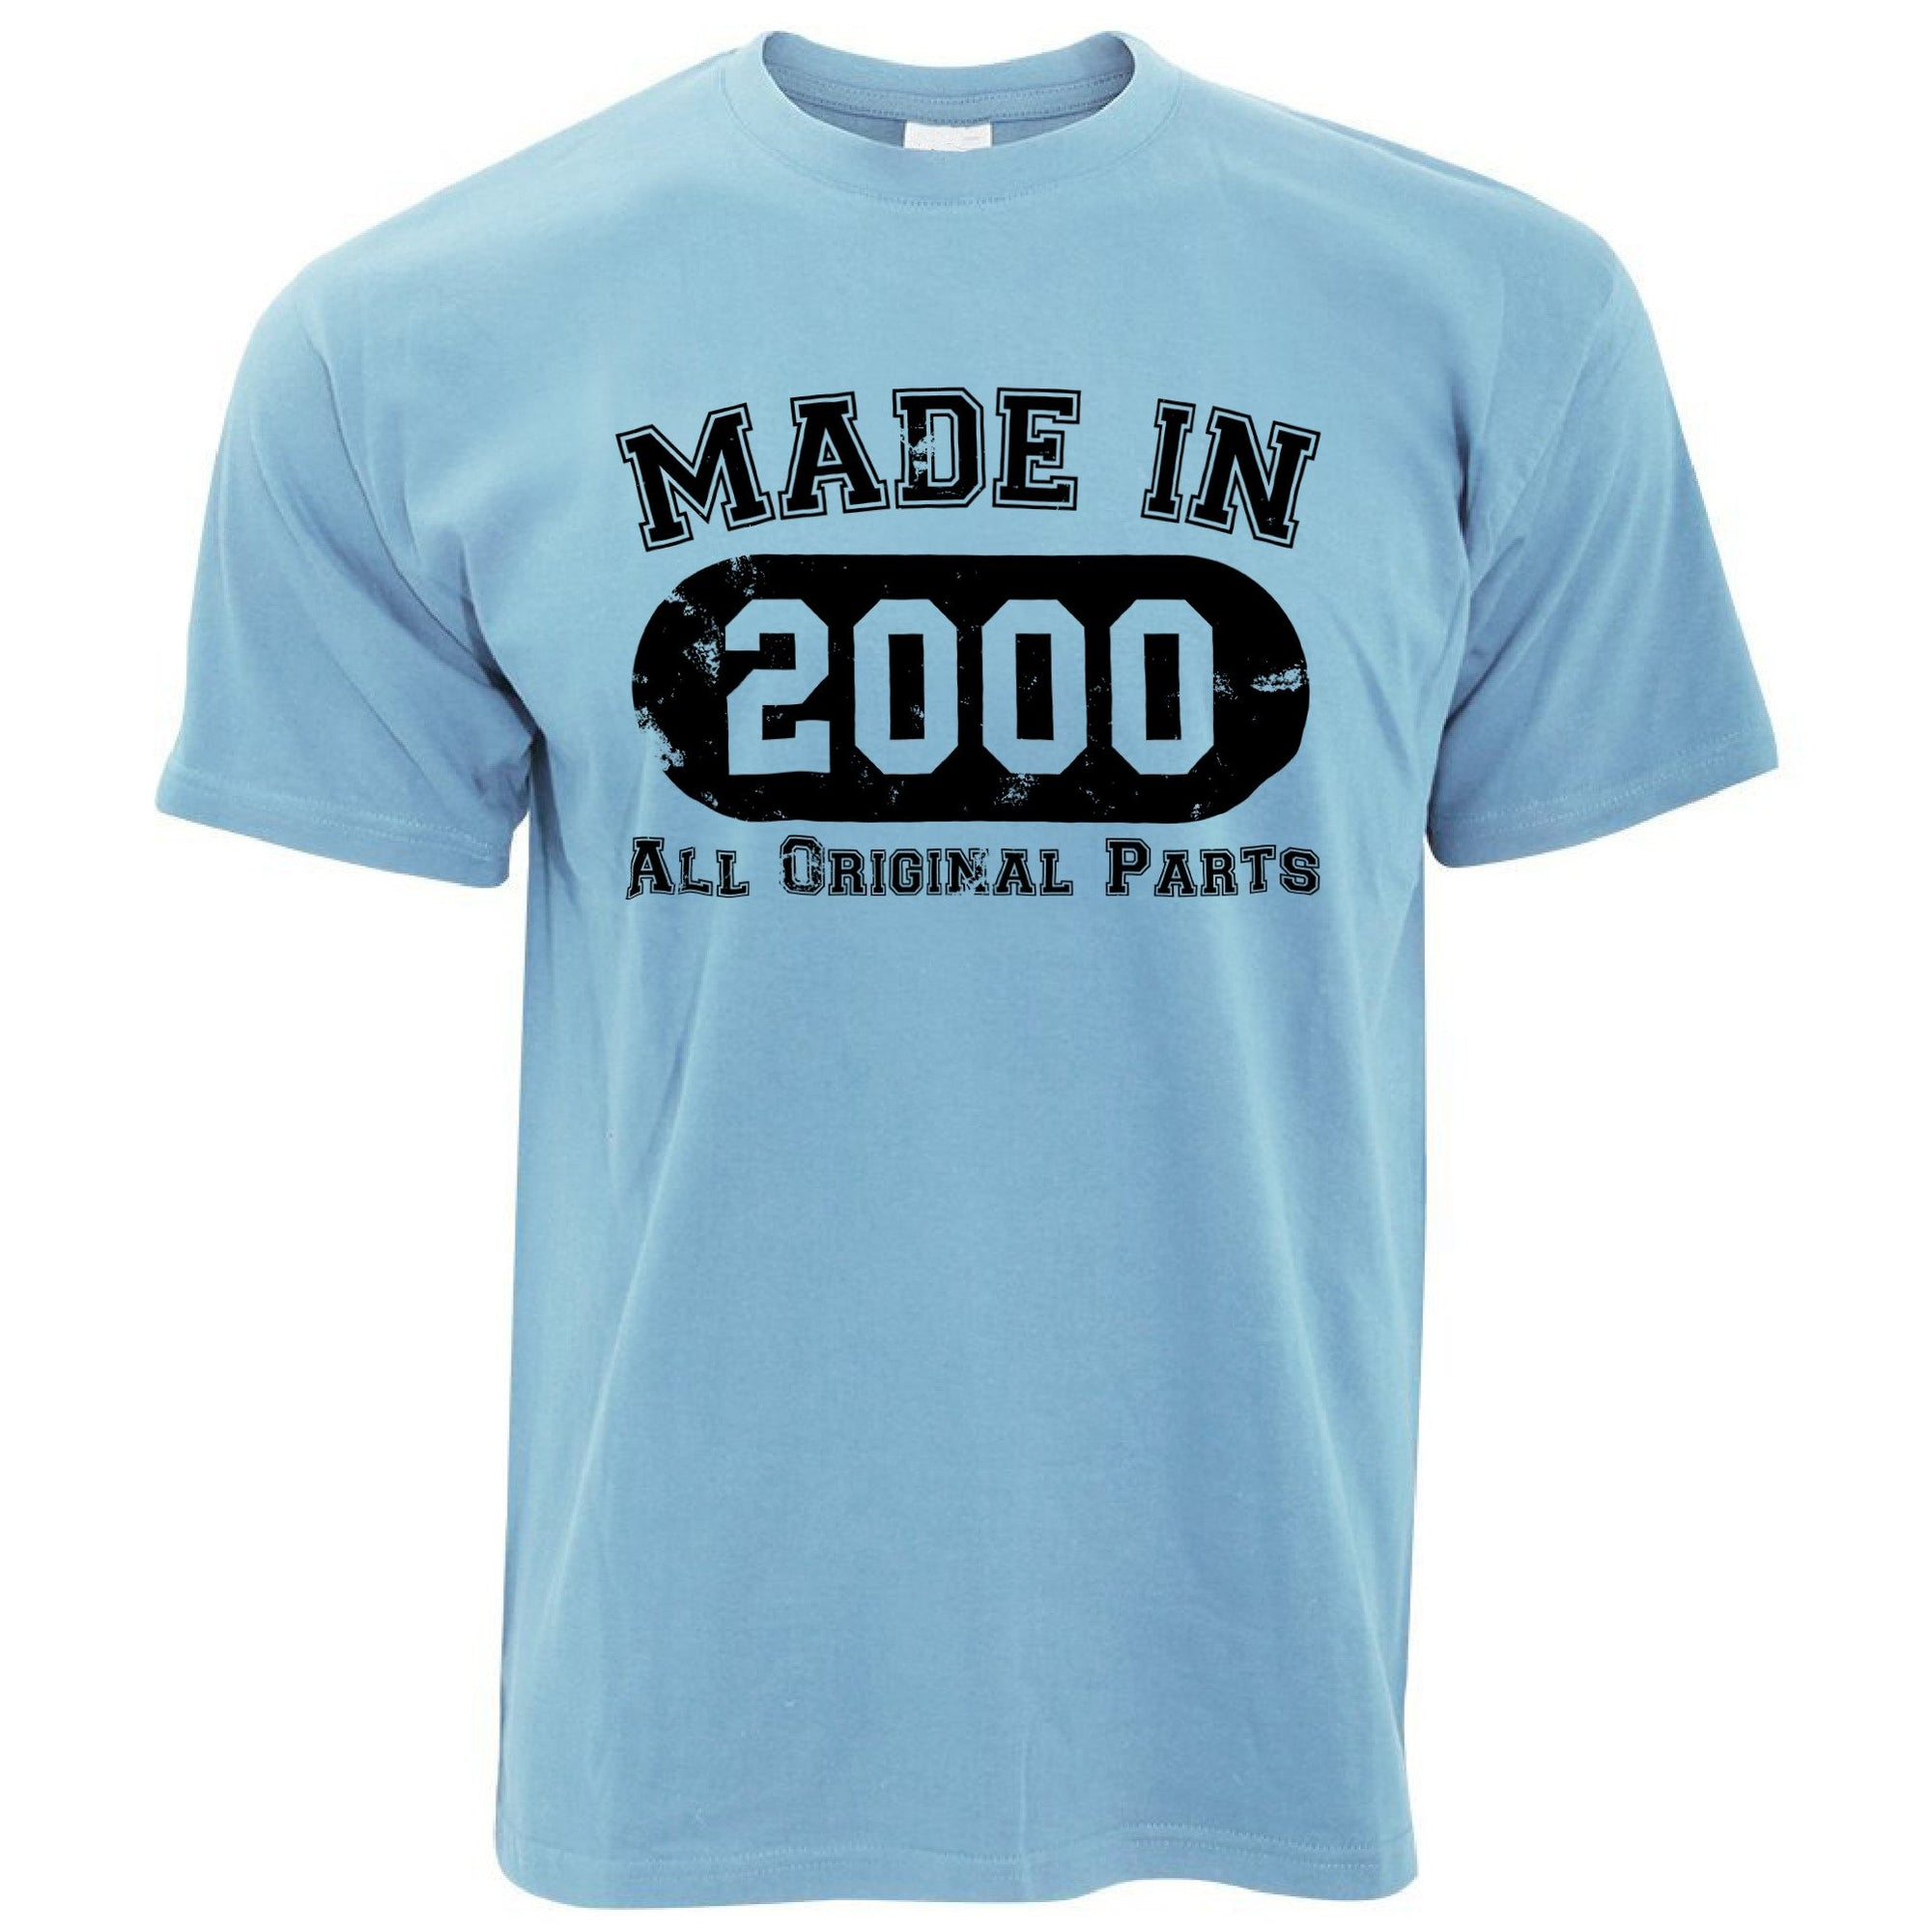 Made in 2000 All Original Parts Mens T-Shirt [Distressed]